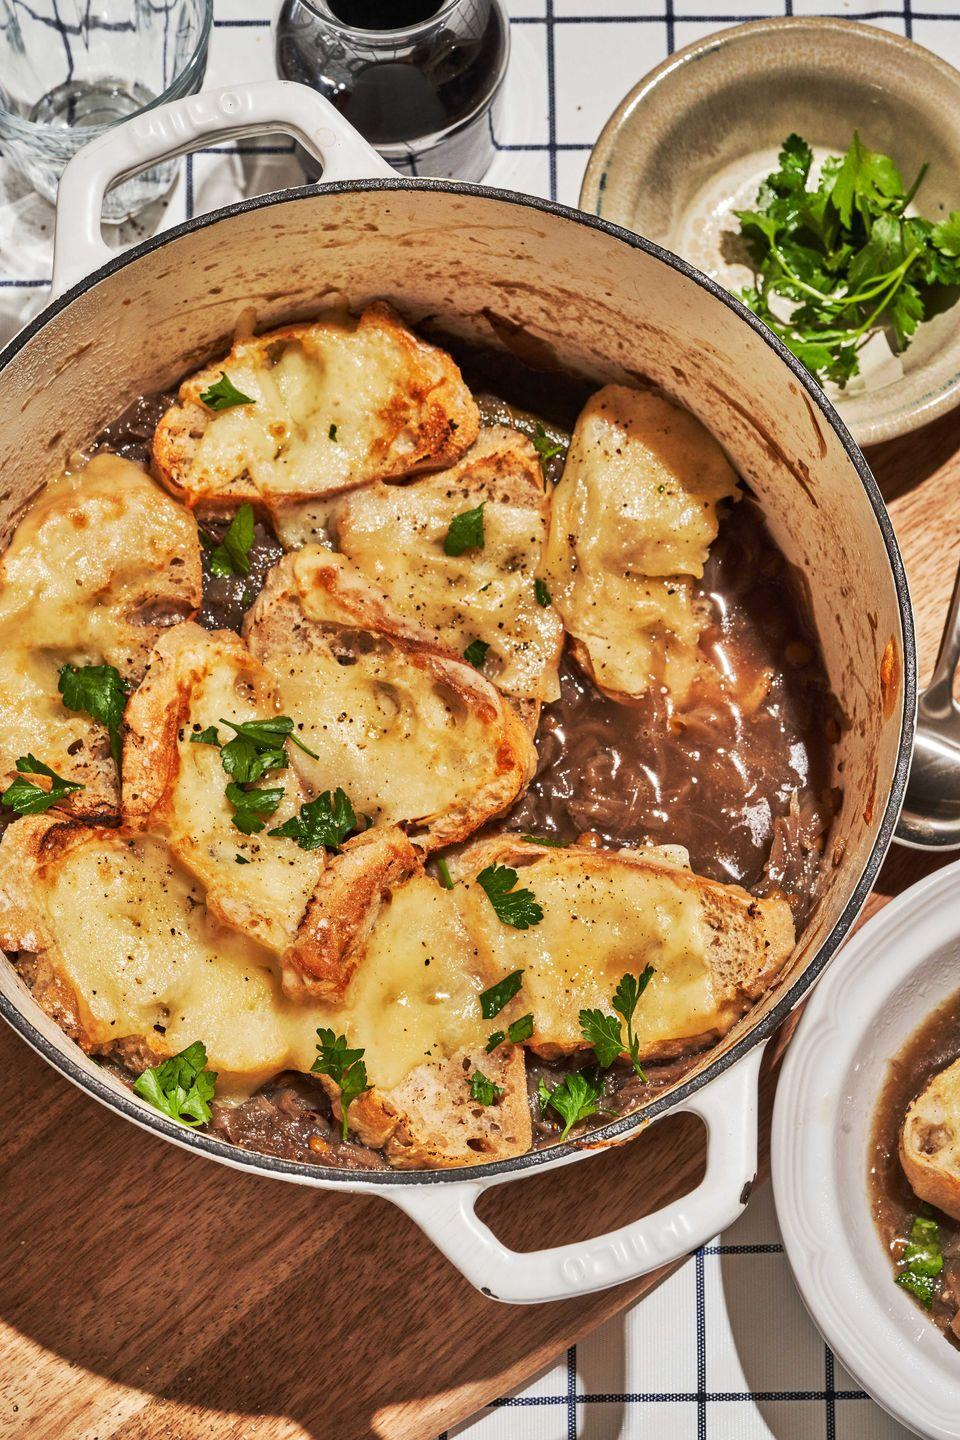 """<p>Pro tip: prep the cheese toasts on a sheet tray in advance to avoid soggy pieces of bread in your leftovers.</p><p>Get the recipe from <a href=""""https://www.delish.com/cooking/recipe-ideas/a36972937/vegan-french-onion-soup-recipe/"""" rel=""""nofollow noopener"""" target=""""_blank"""" data-ylk=""""slk:Delish"""" class=""""link rapid-noclick-resp"""">Delish</a>. </p>"""